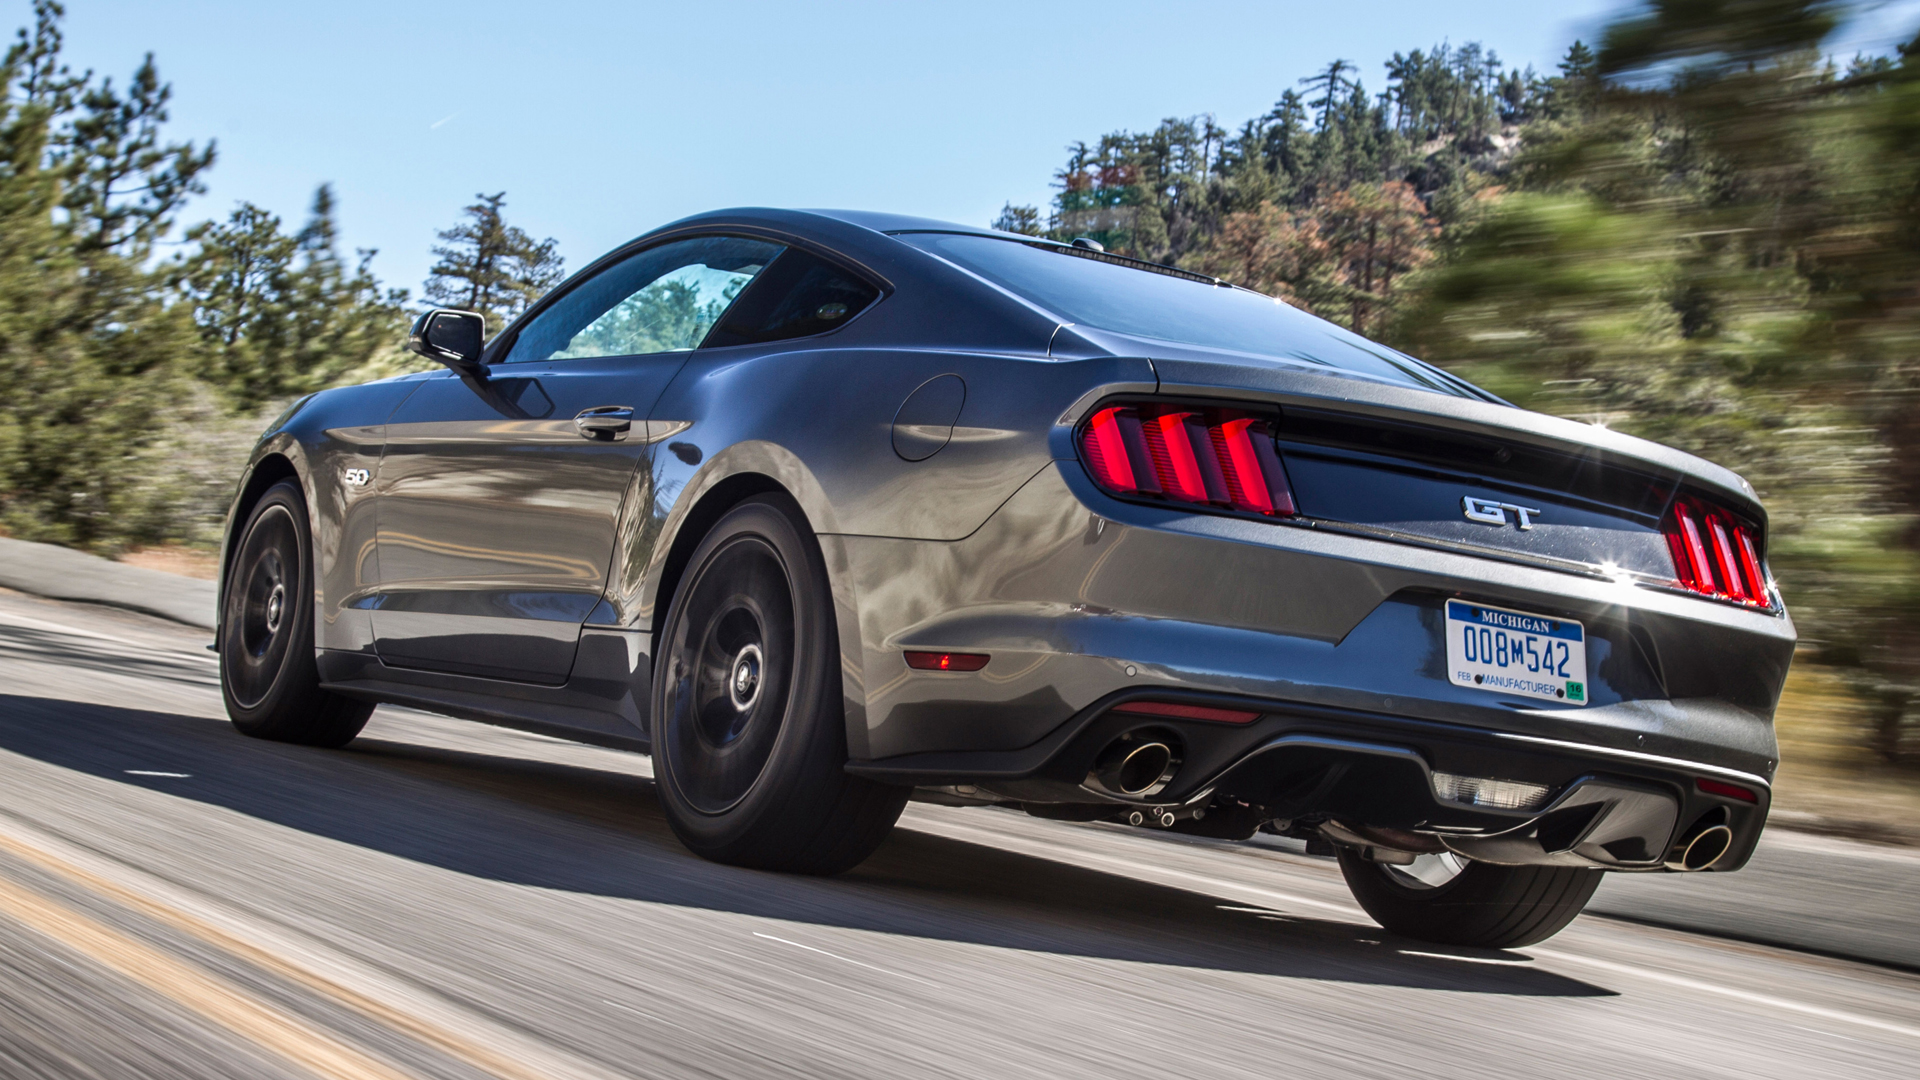 mustang gt 2015 wallpapers ford mustang gt 2015 photos ford mustang 1920x1080